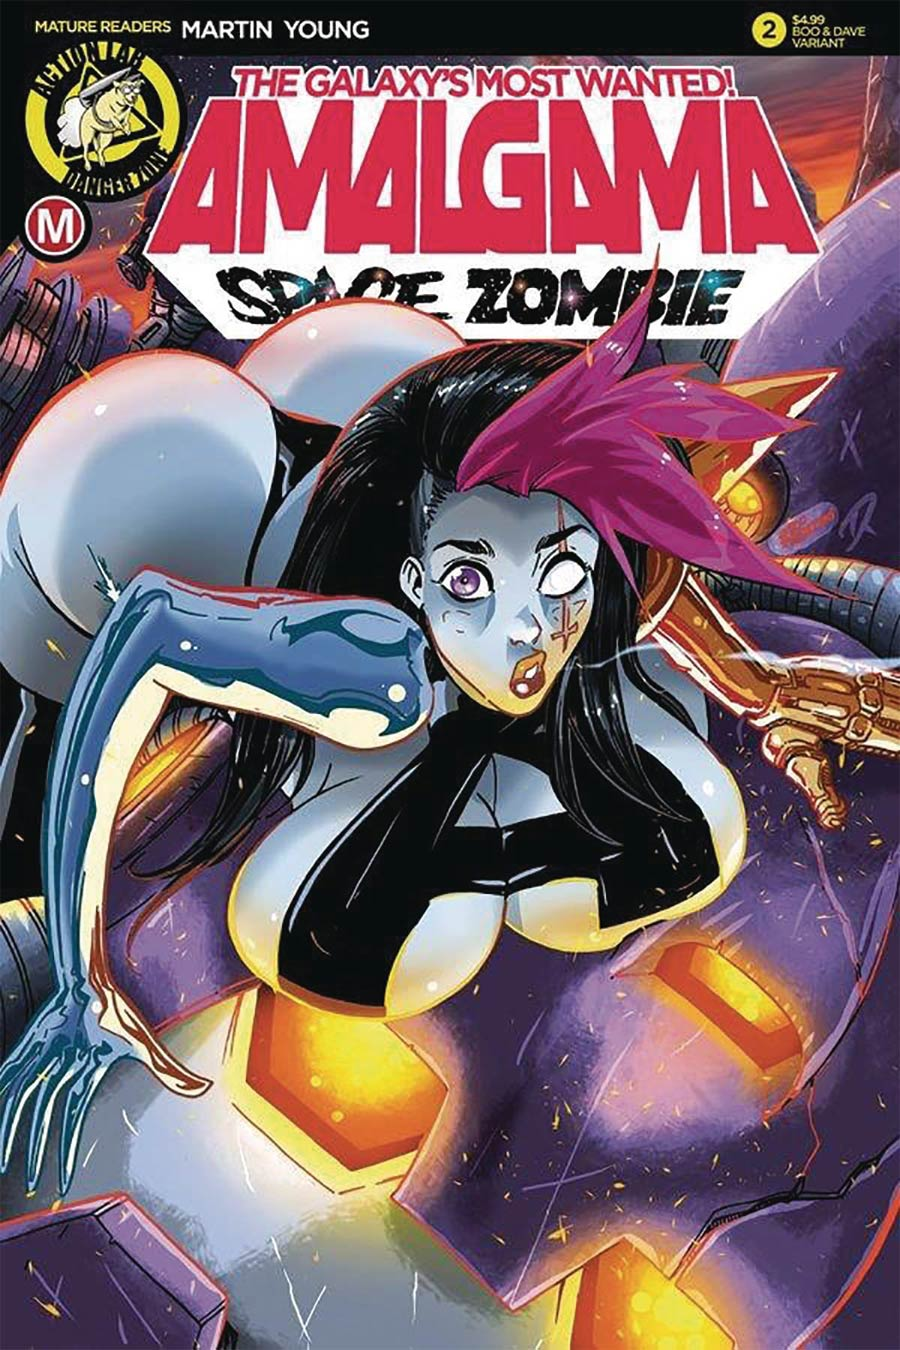 Amalgama Space Zombie Galaxys Most Wanted #2 Cover C Variant Boo Rudetoons Cover